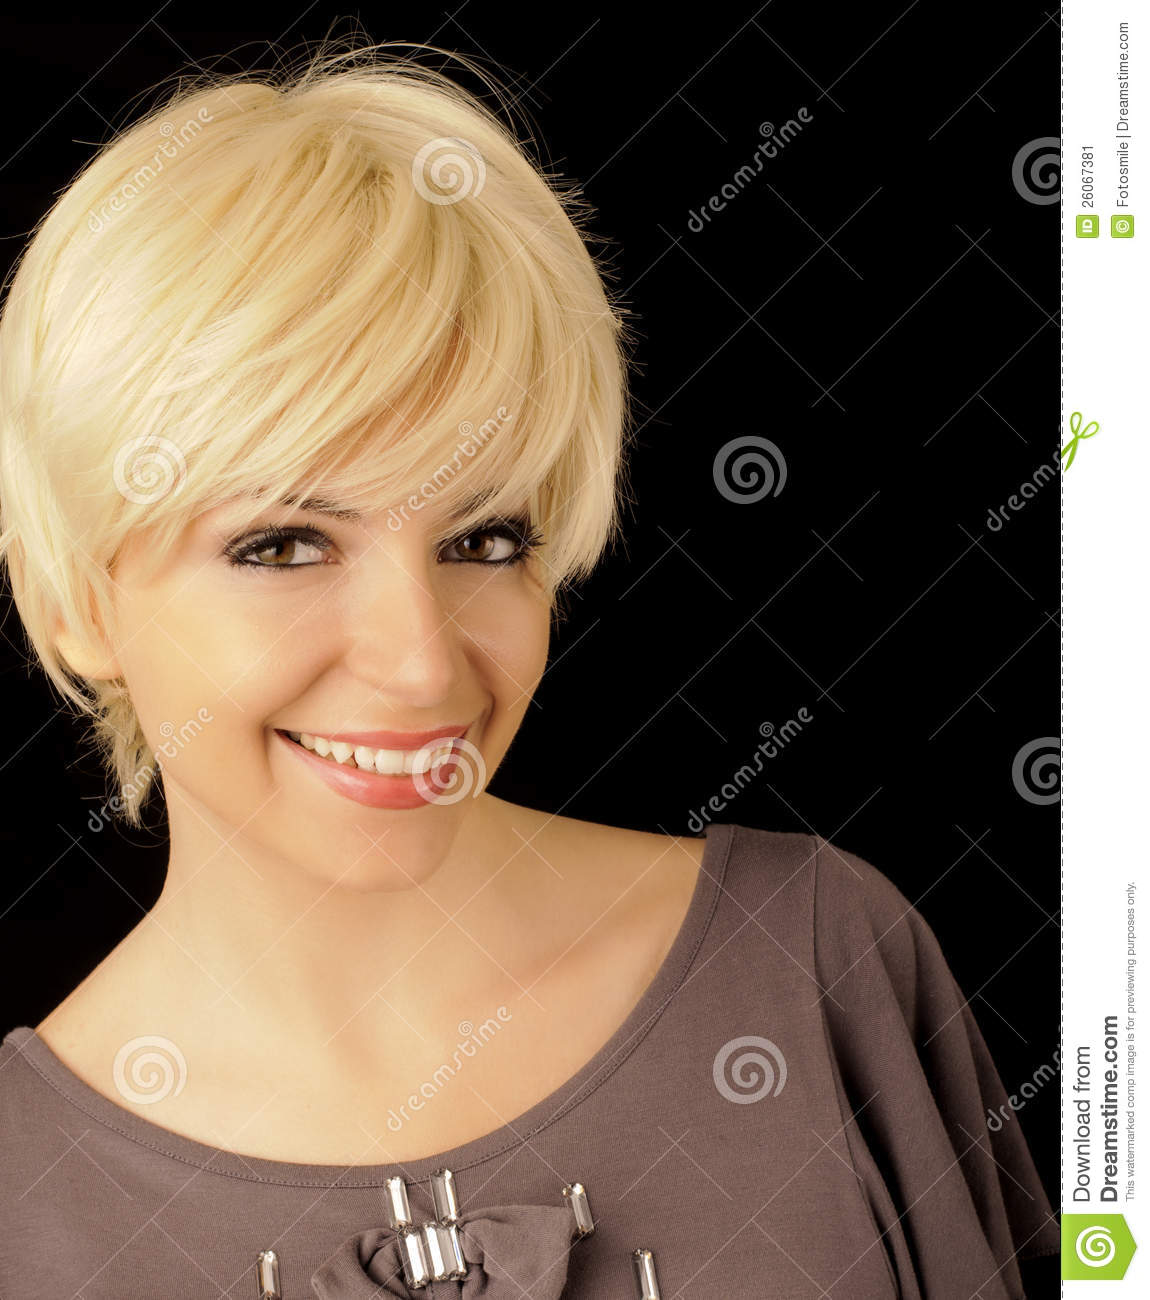 Beautiful girl with short hair stock image image 26067381